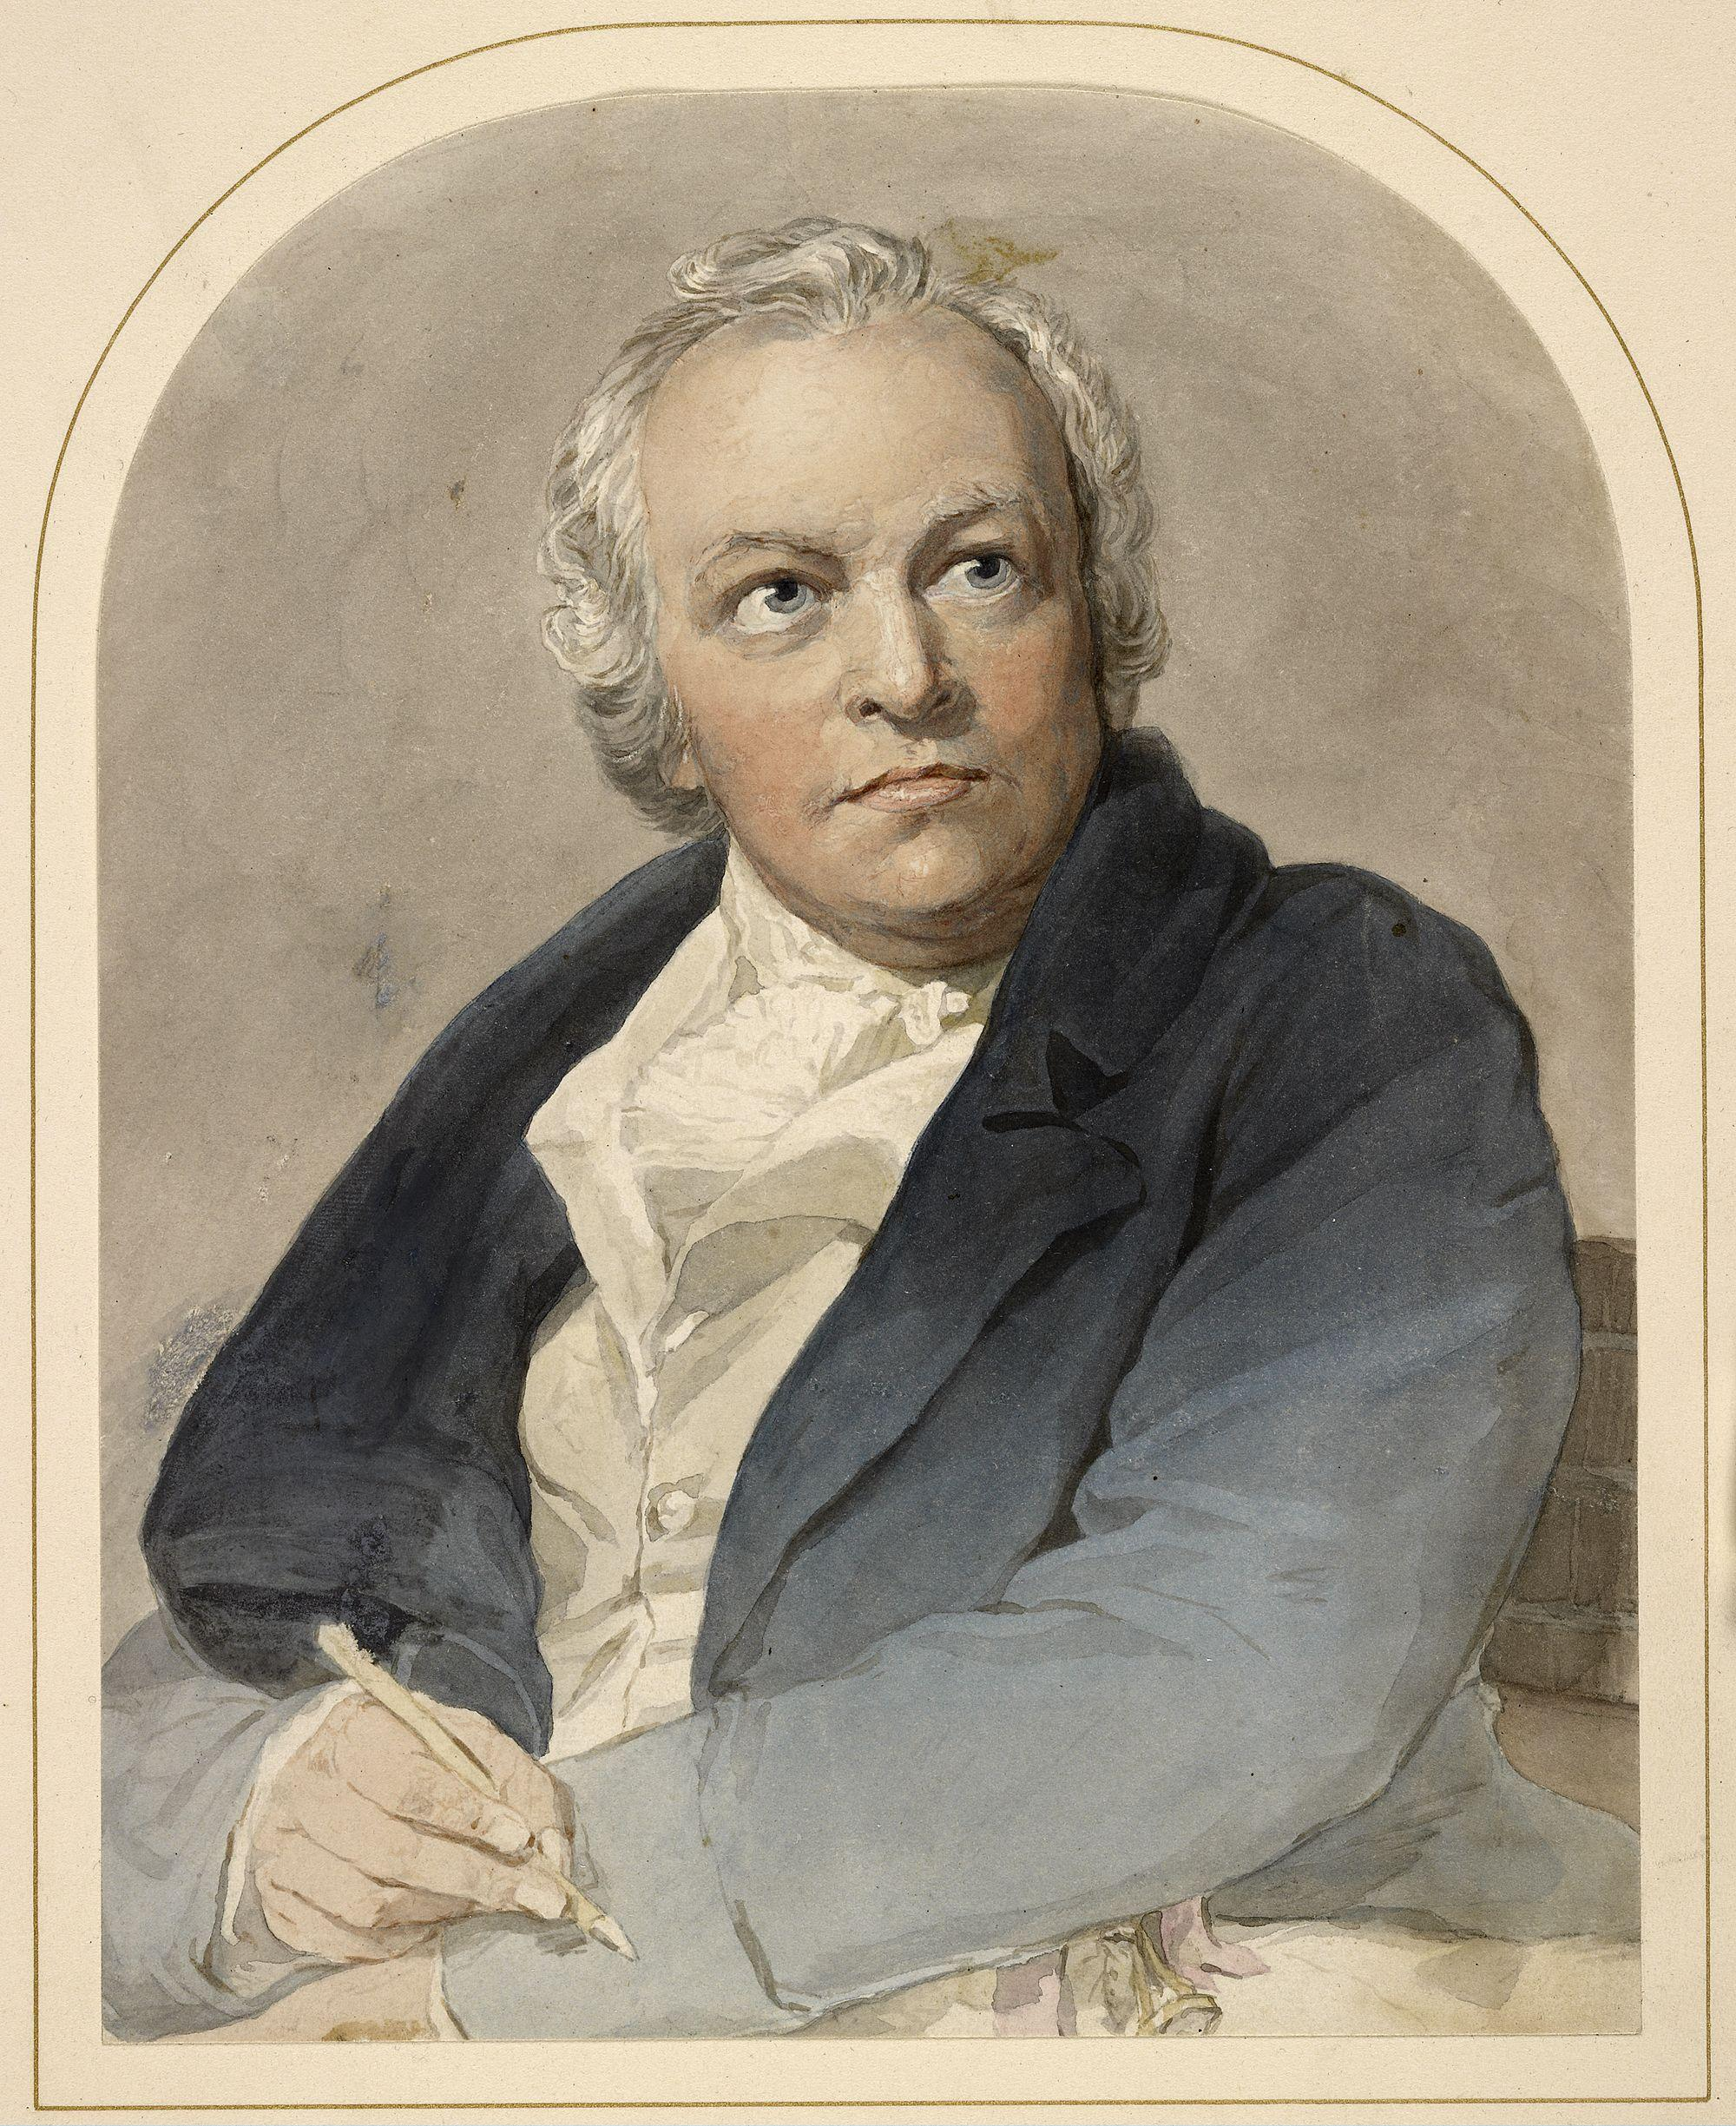 a biography of william blake William blake poems, quotes, articles, biography, and more read and share william blake poem examples and other information about and by writer and famous poet william blake.